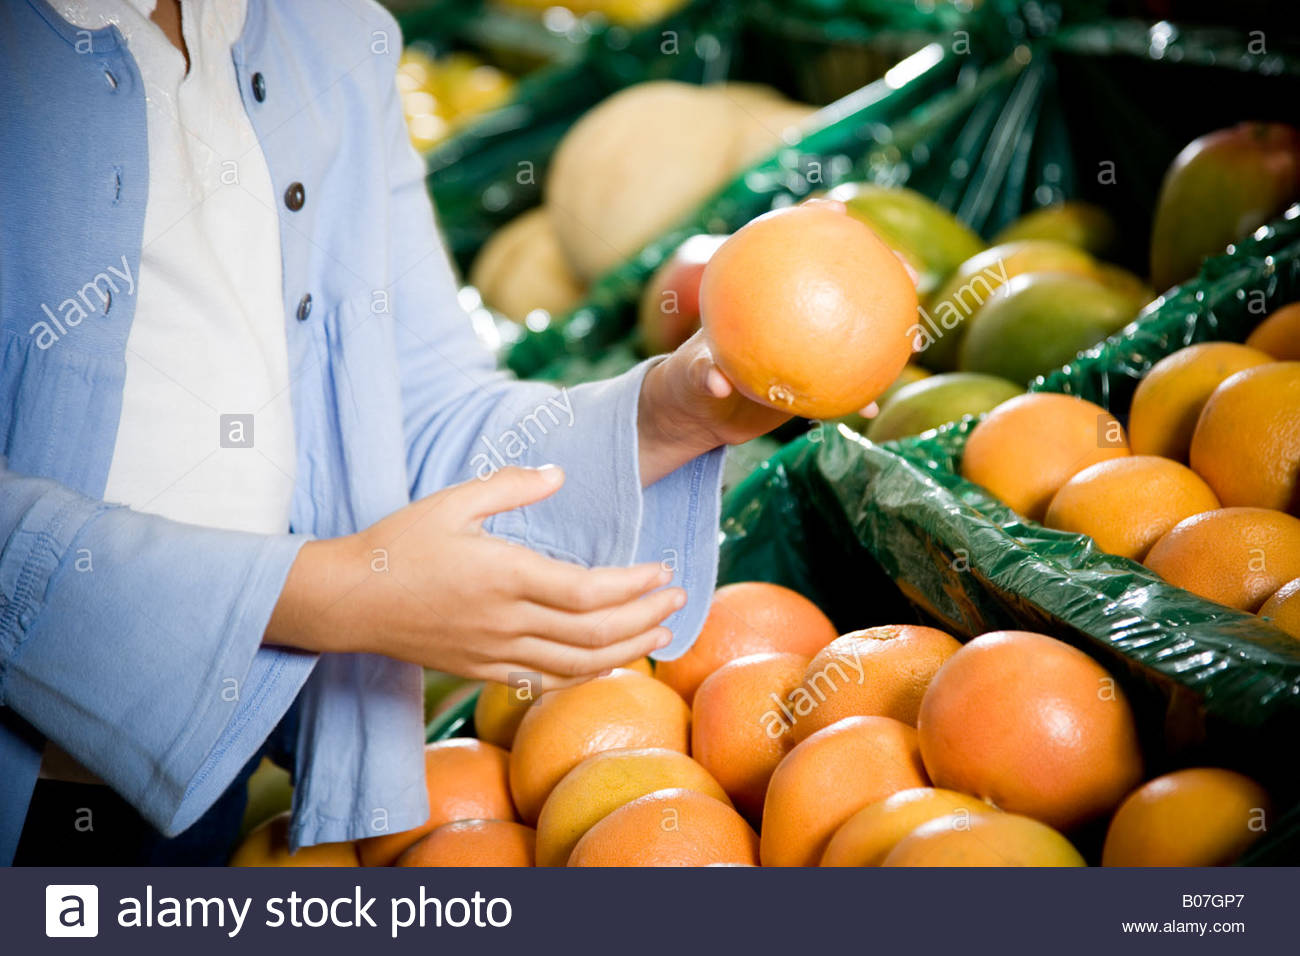 Cropped image of a girl selecting grapefruits in a supermarket. - Stock Image